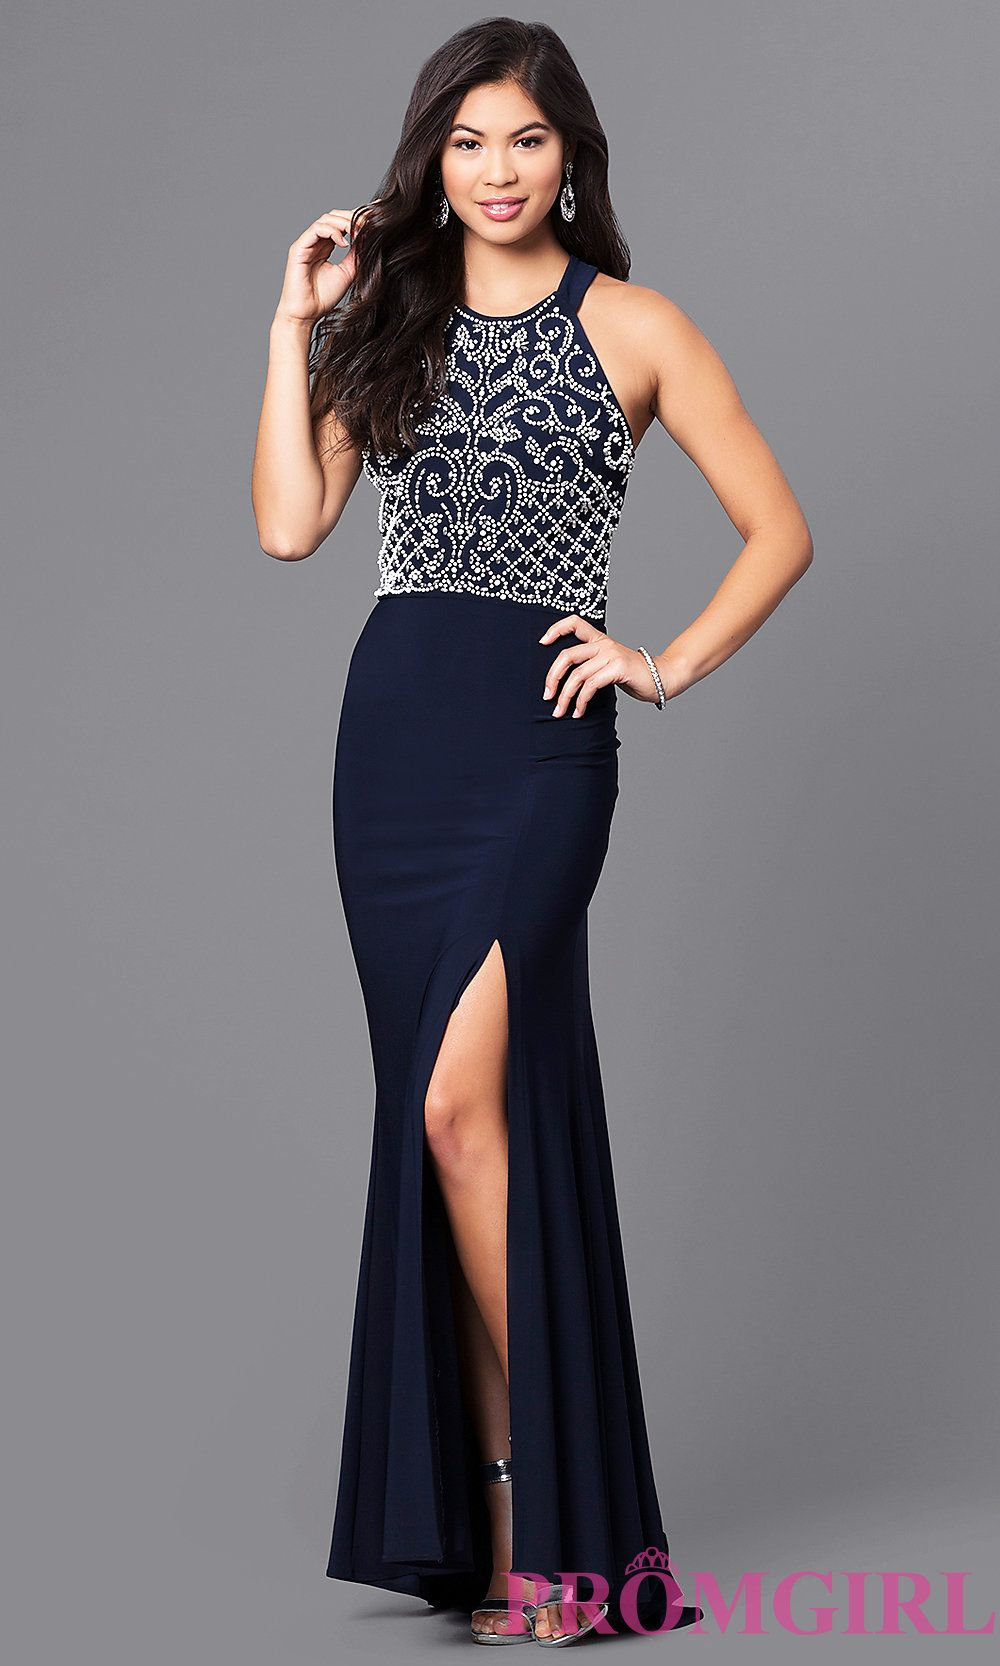 e422b3b4d Image of long navy blue prom dress with white beaded bodice. Front Image